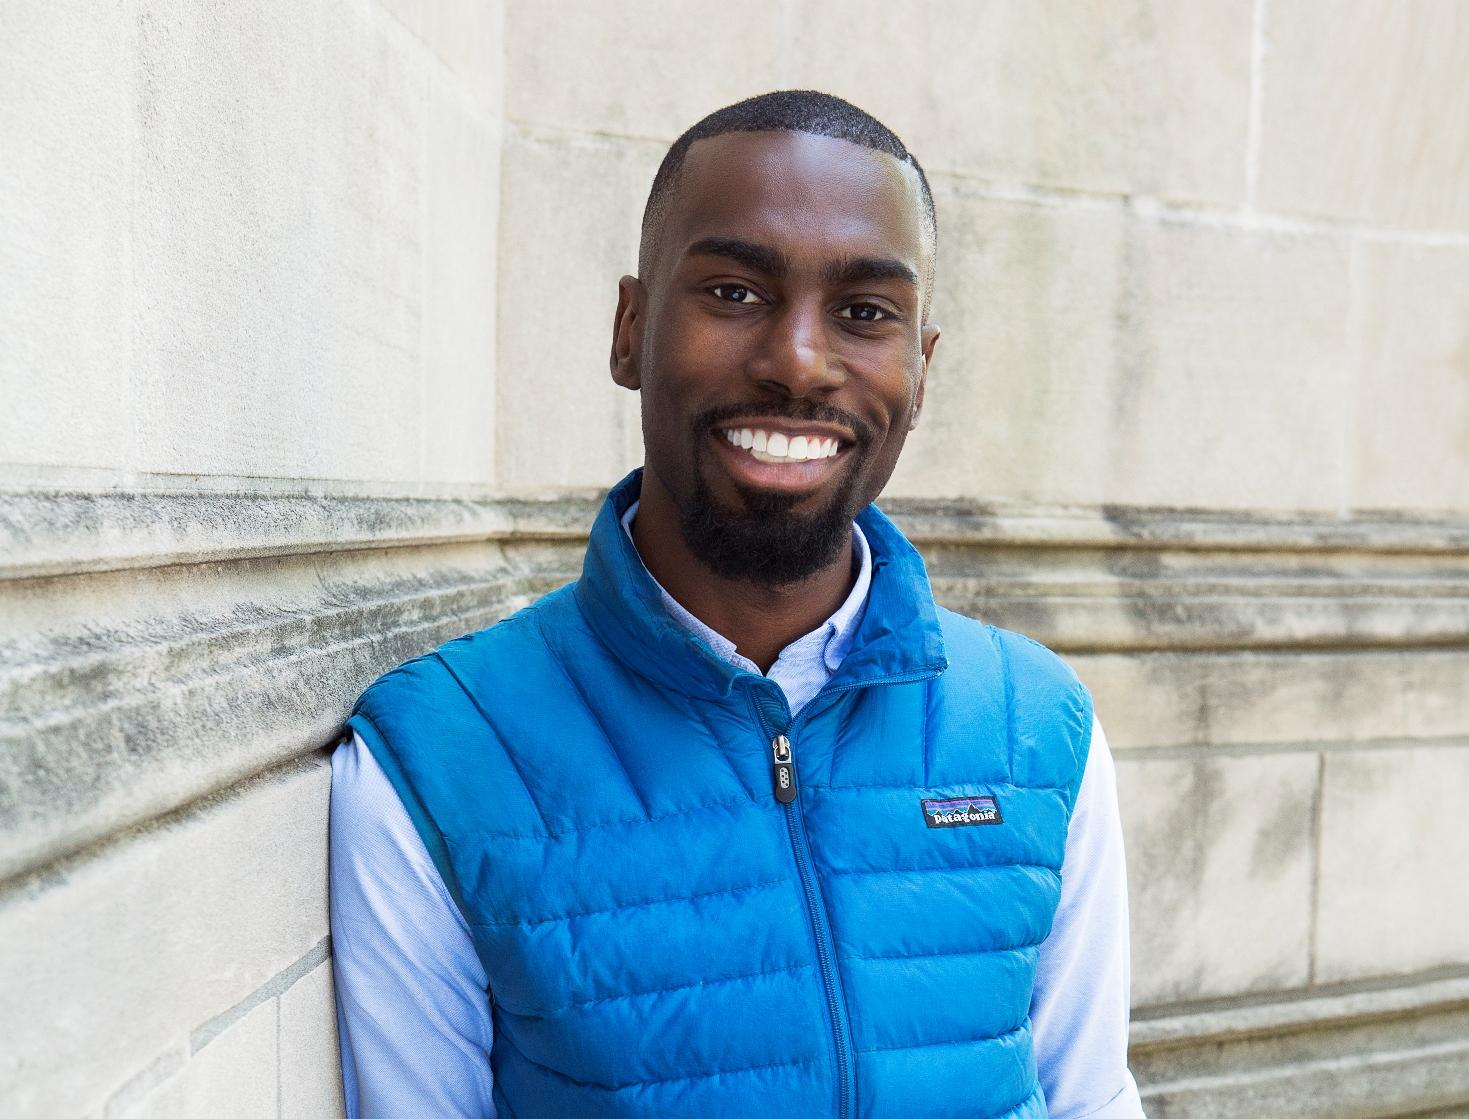 Deray Mckesson Poses In The Trademark Blue Vest That He First Wore In The Early Days Of The Ferguson Protests